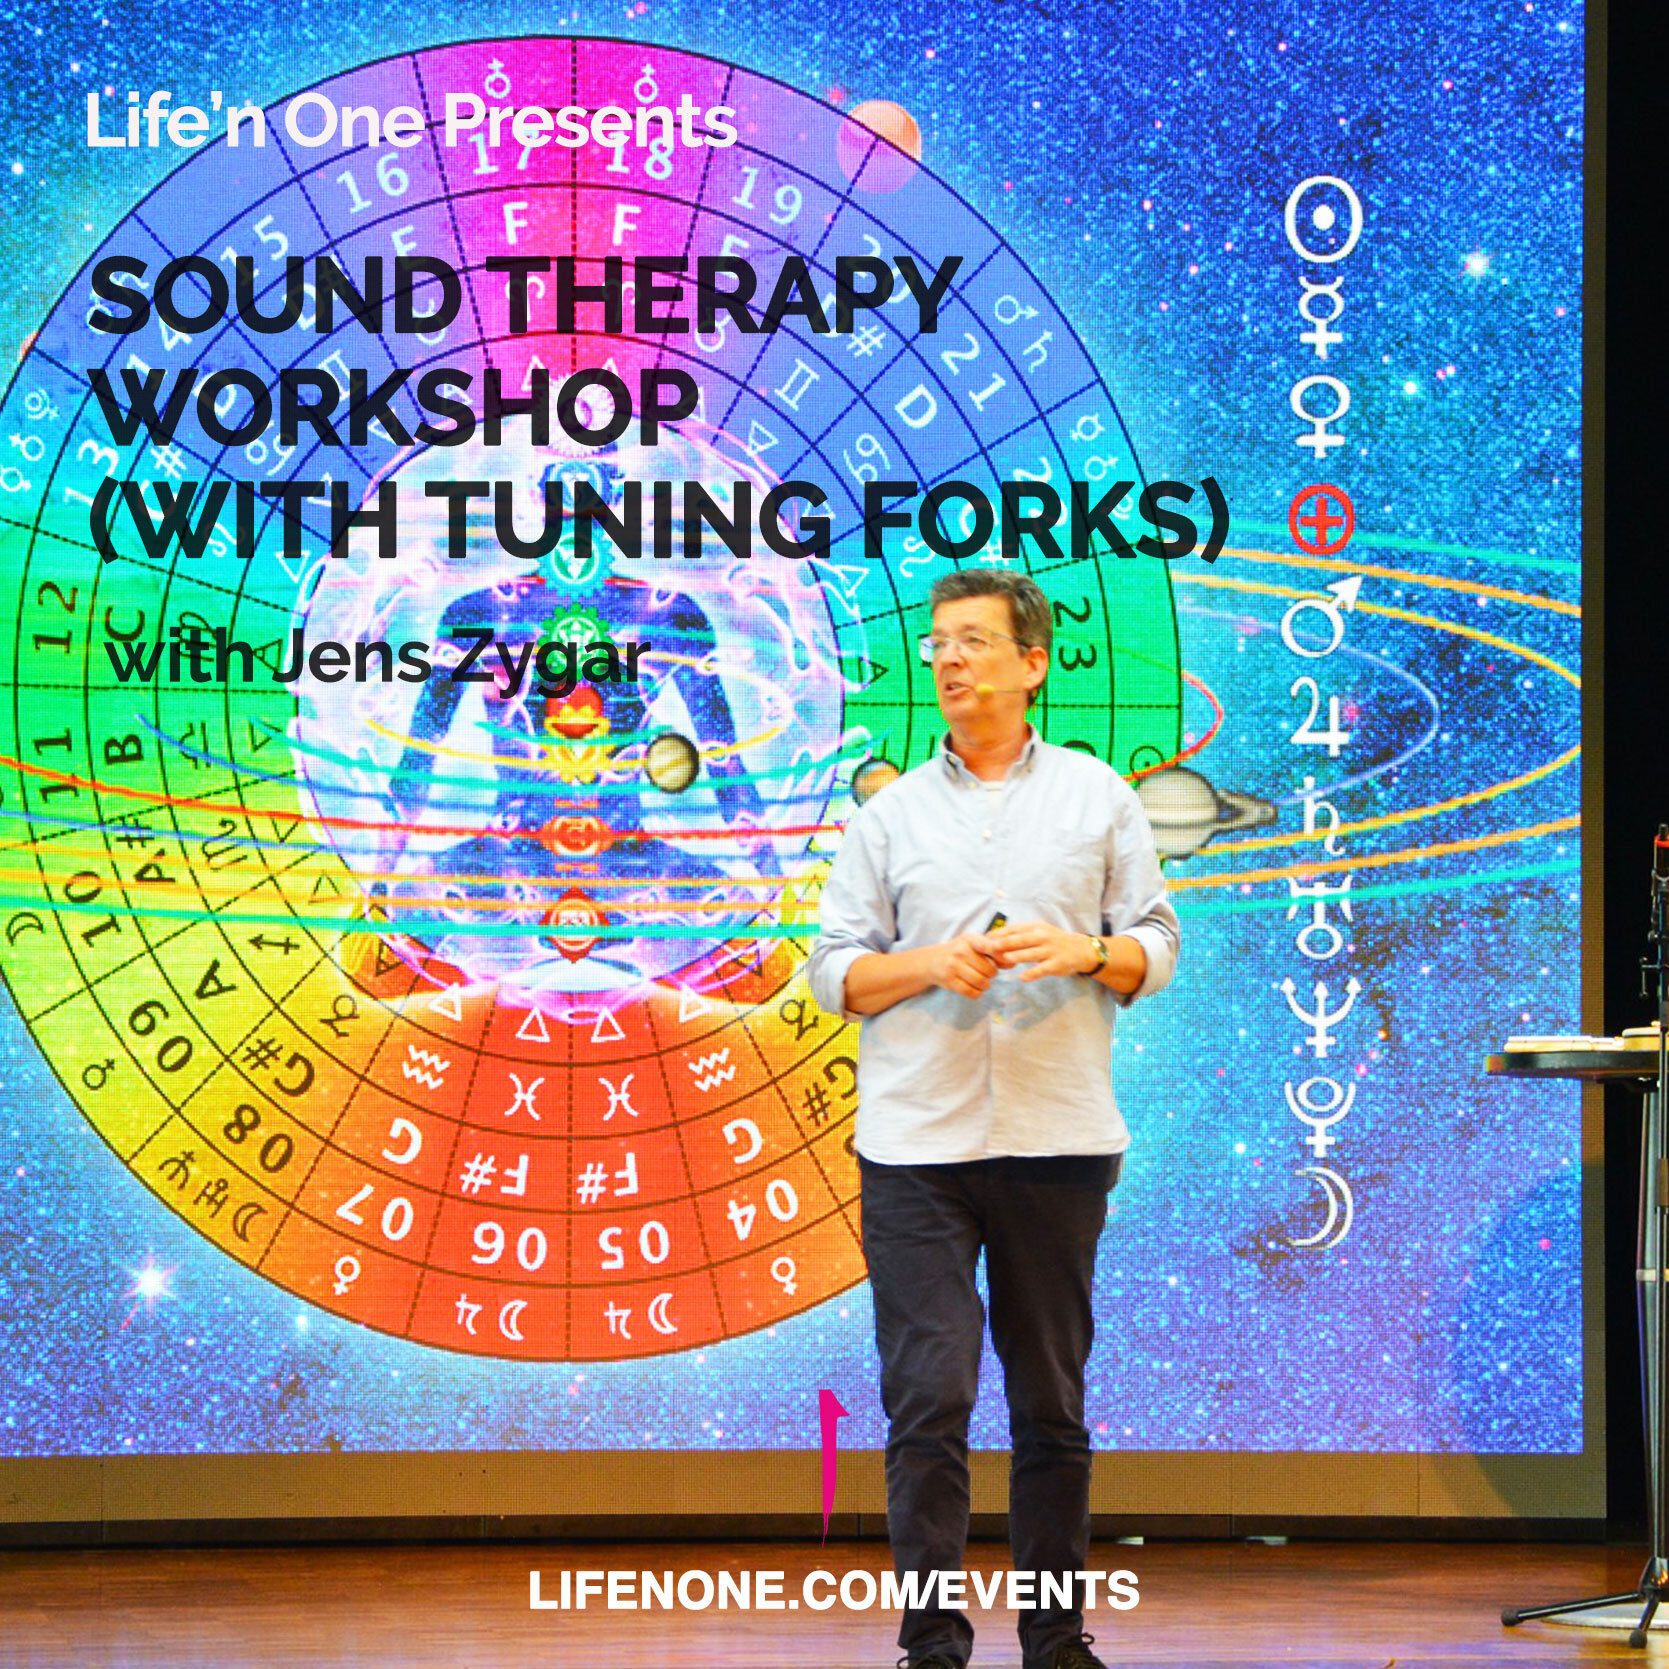 191101-Sound-therapy-workshop-with-Jens.jpg